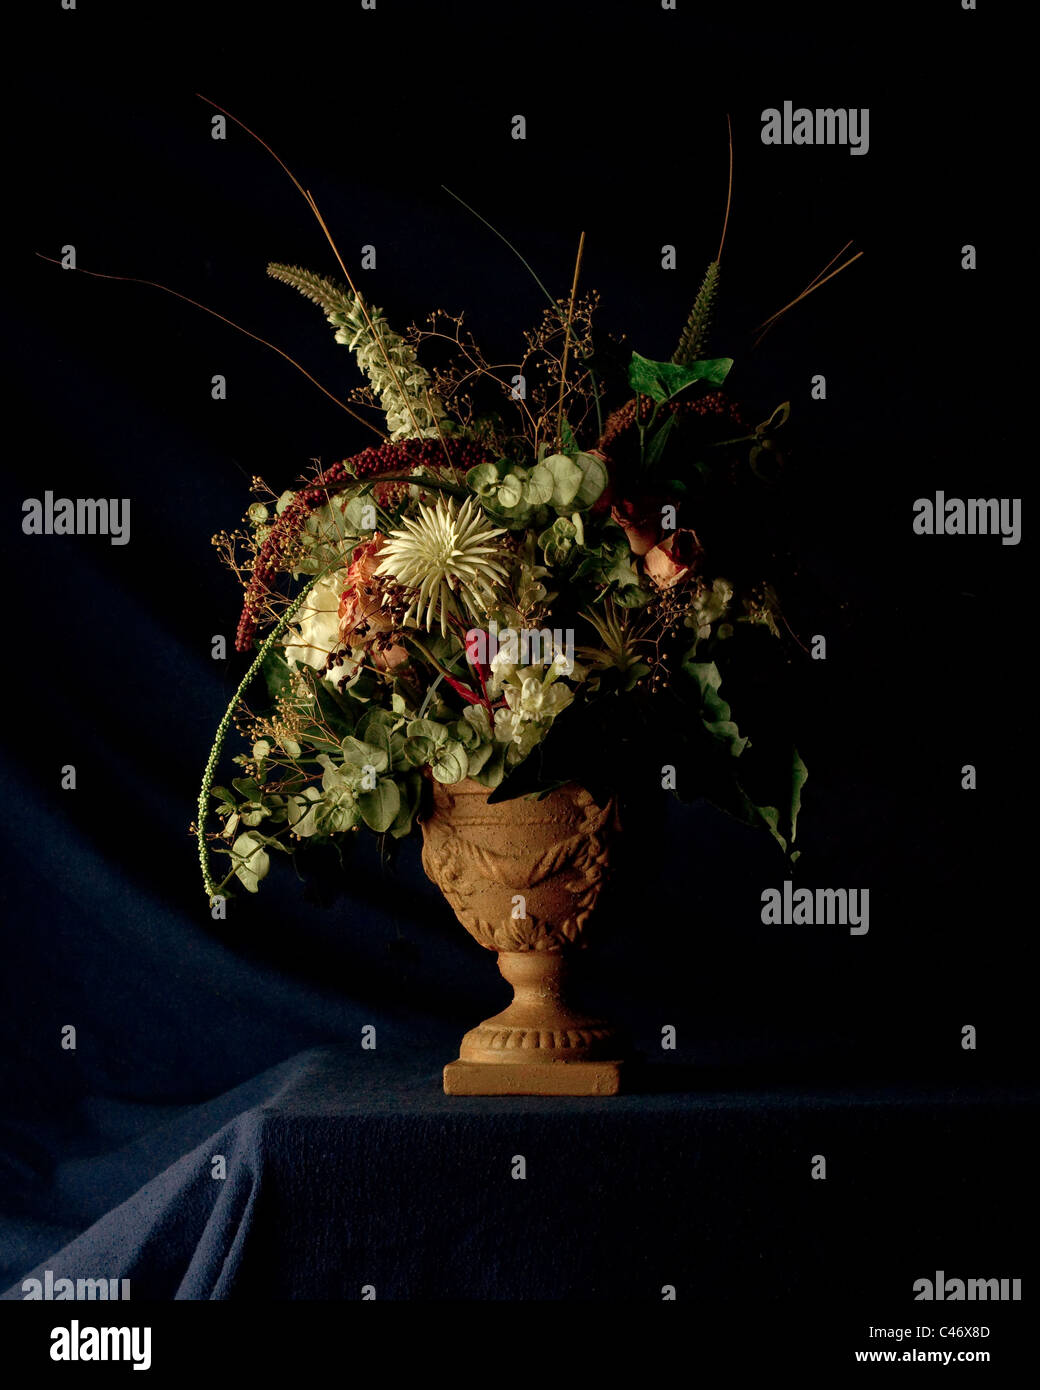 A beautiful potted flower arrangement photographed in a chiaroscuro style. - Stock Image